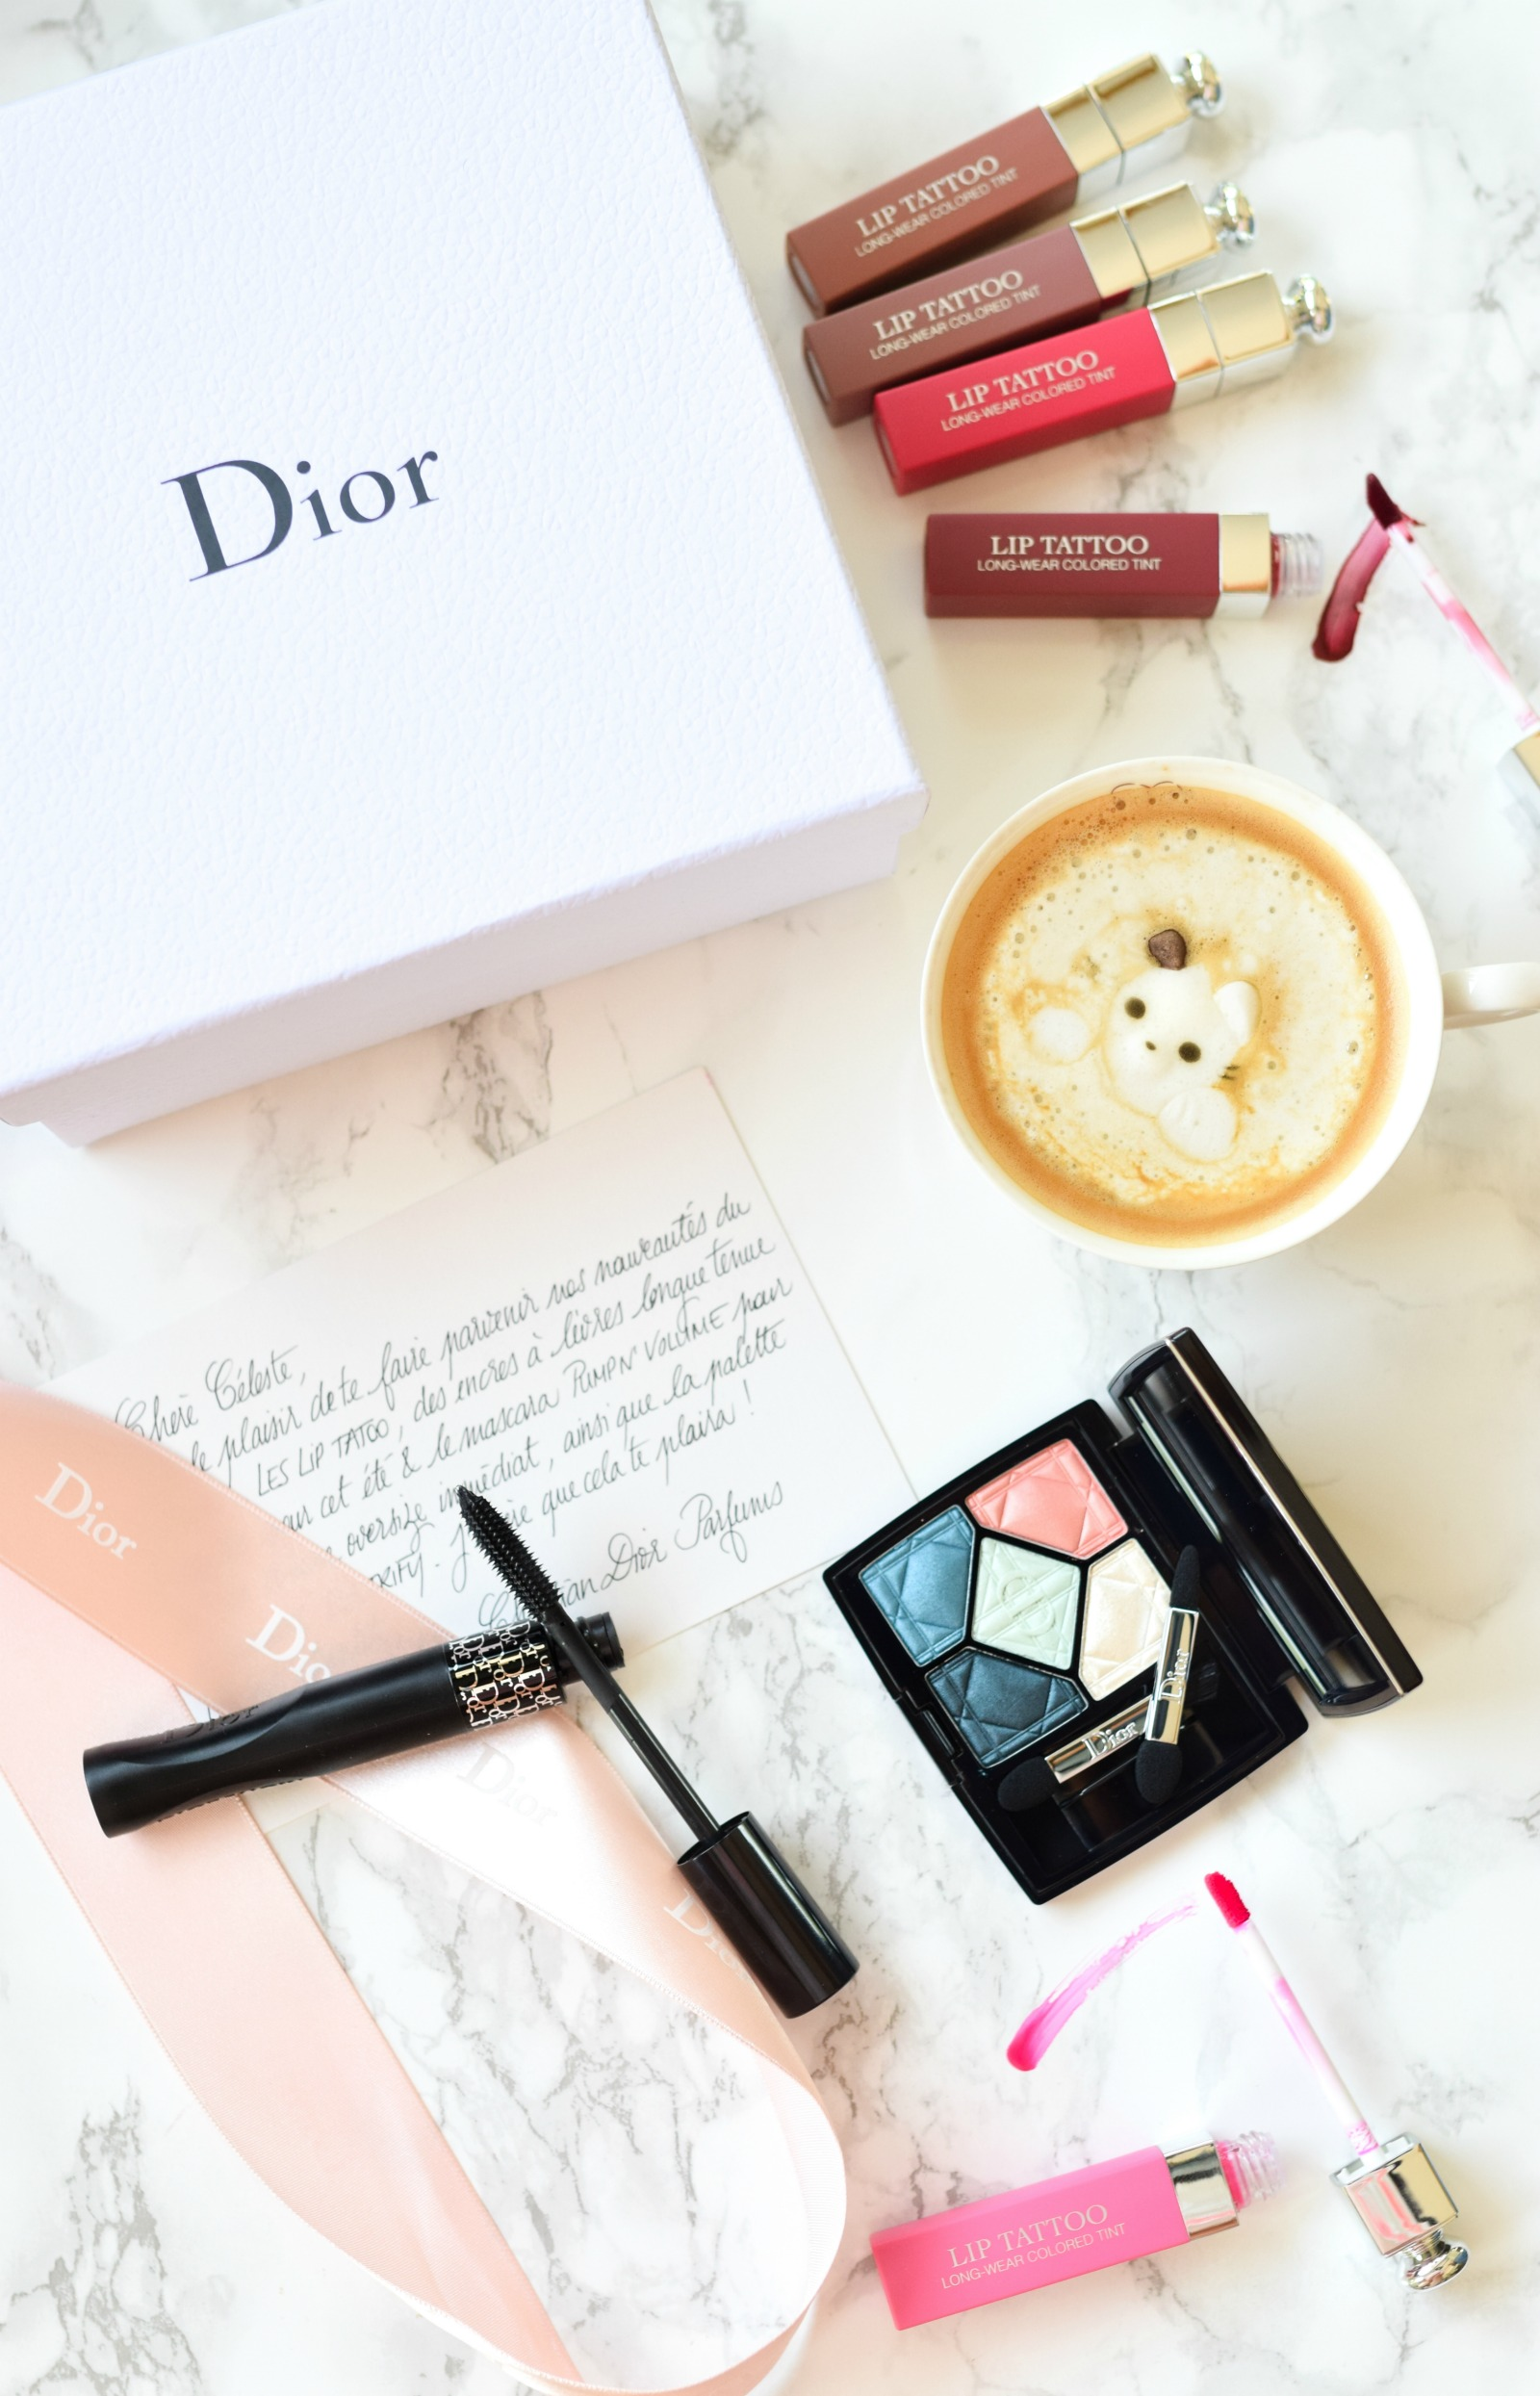 Dior Makeup, Lip Tattoo, Pump'N Volume mascara